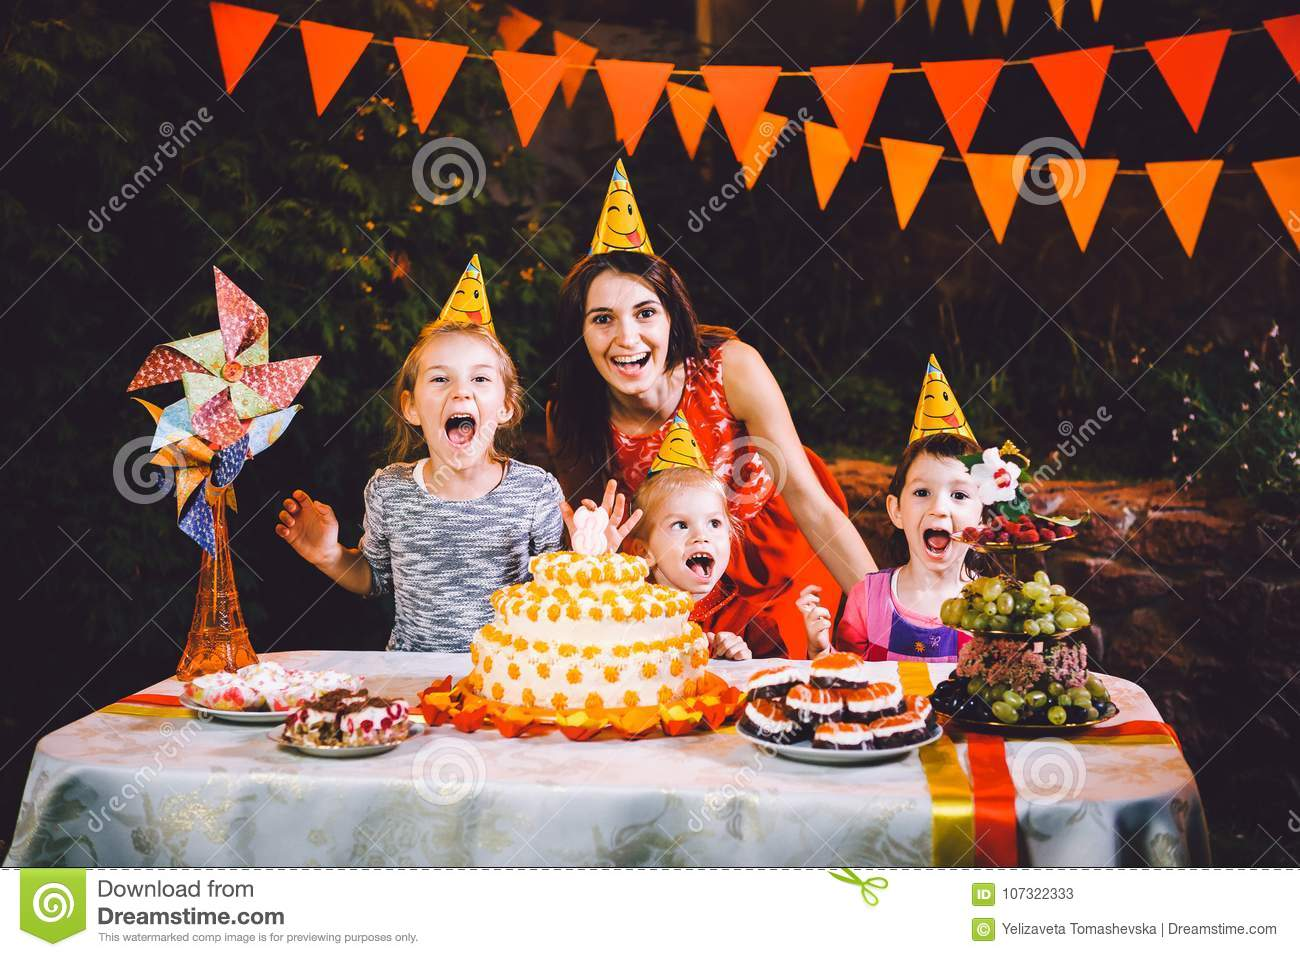 A large mother and three children at a festive table with sweets and a cake in the courtyard decorated with lights and a garland o